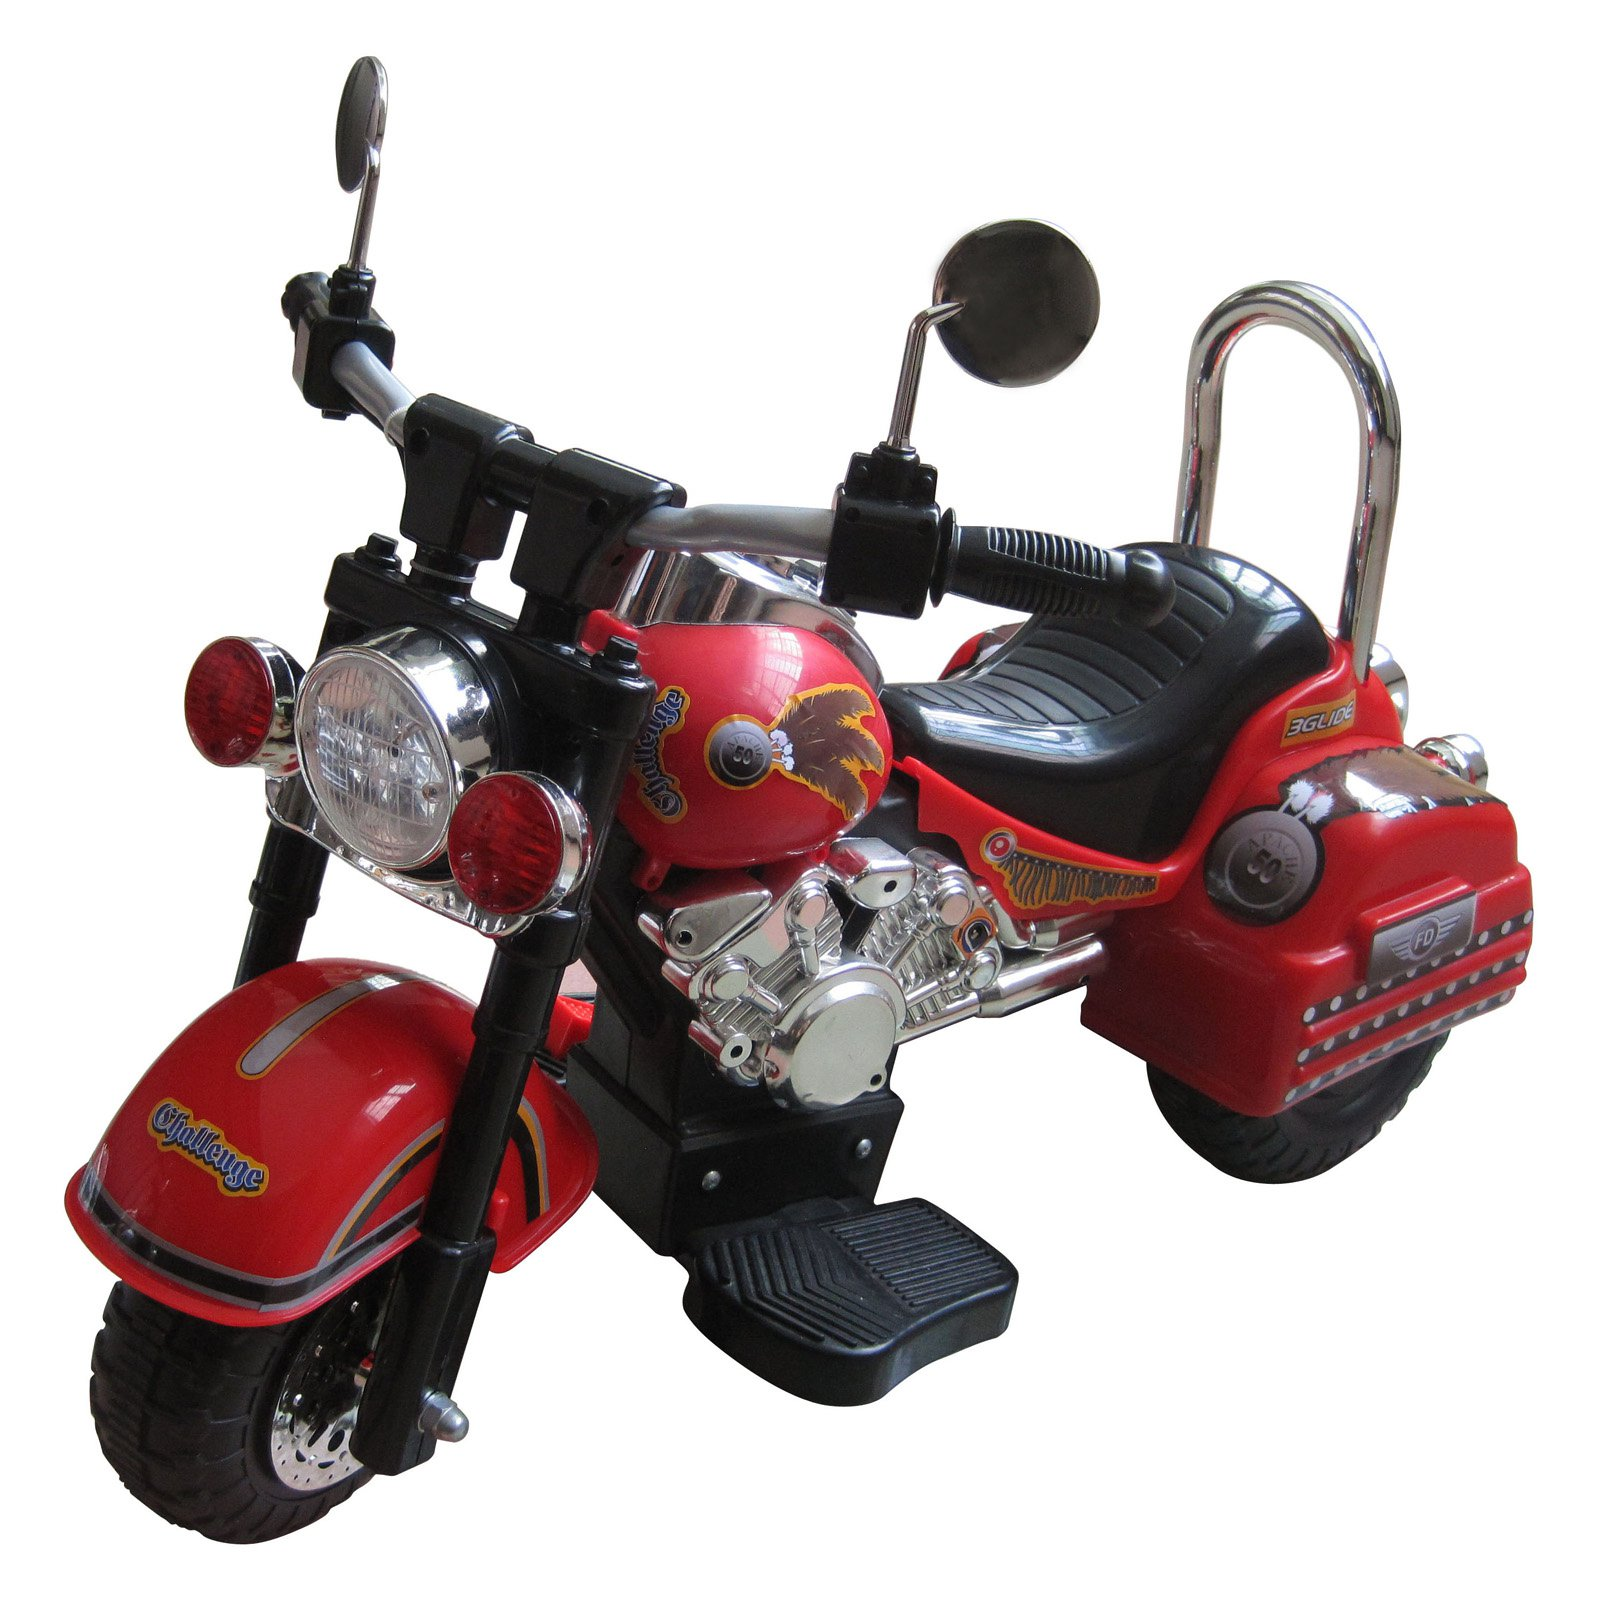 Merske Harley Style Motorcycle Battery Powered Riding Toy - Red